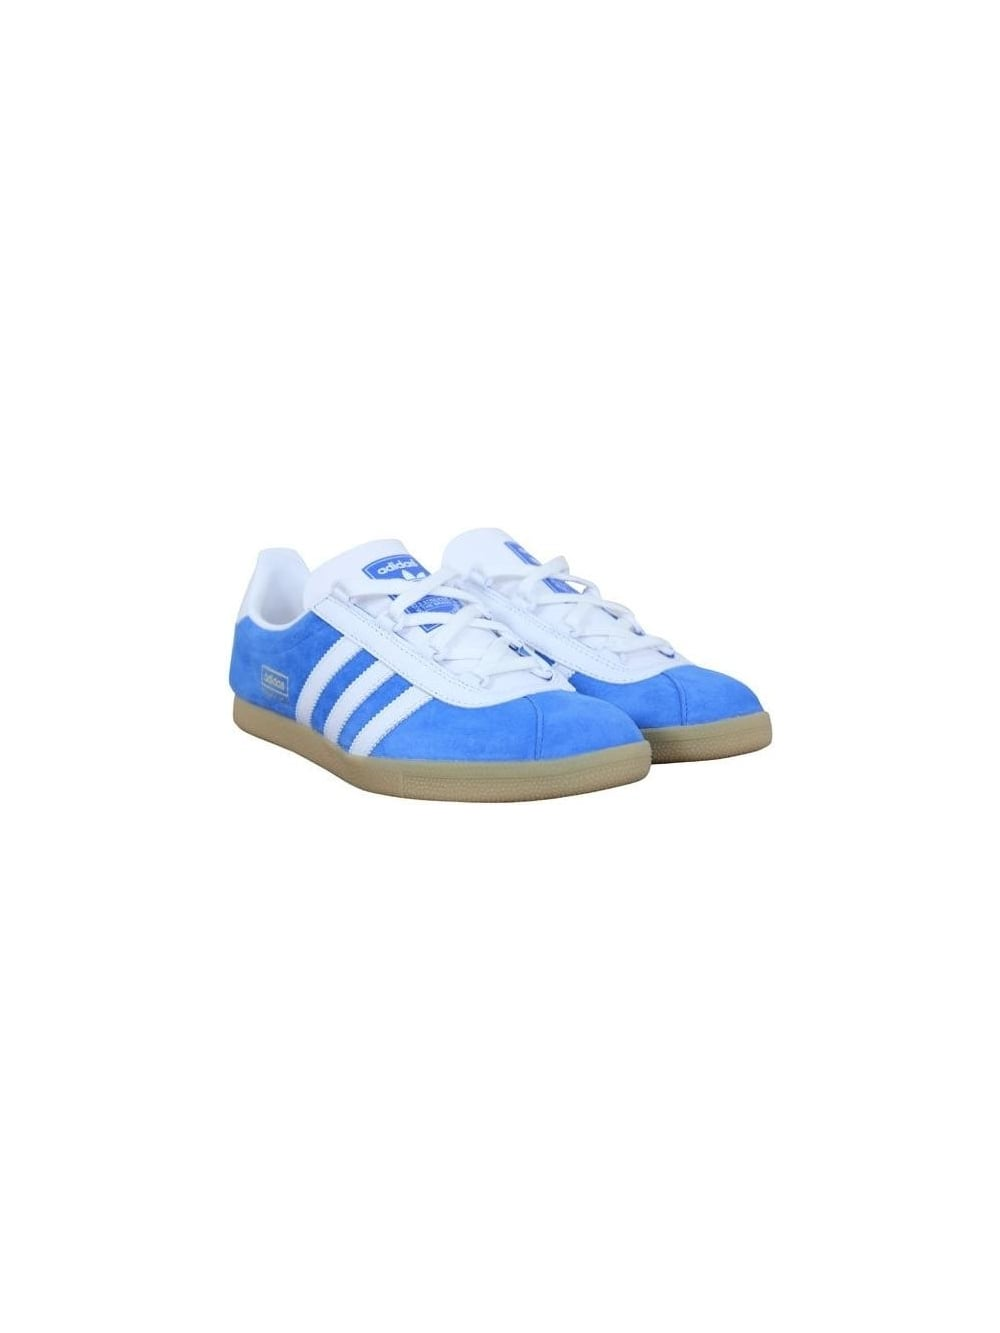 Adidas Trimm Star Trainers in Brittany